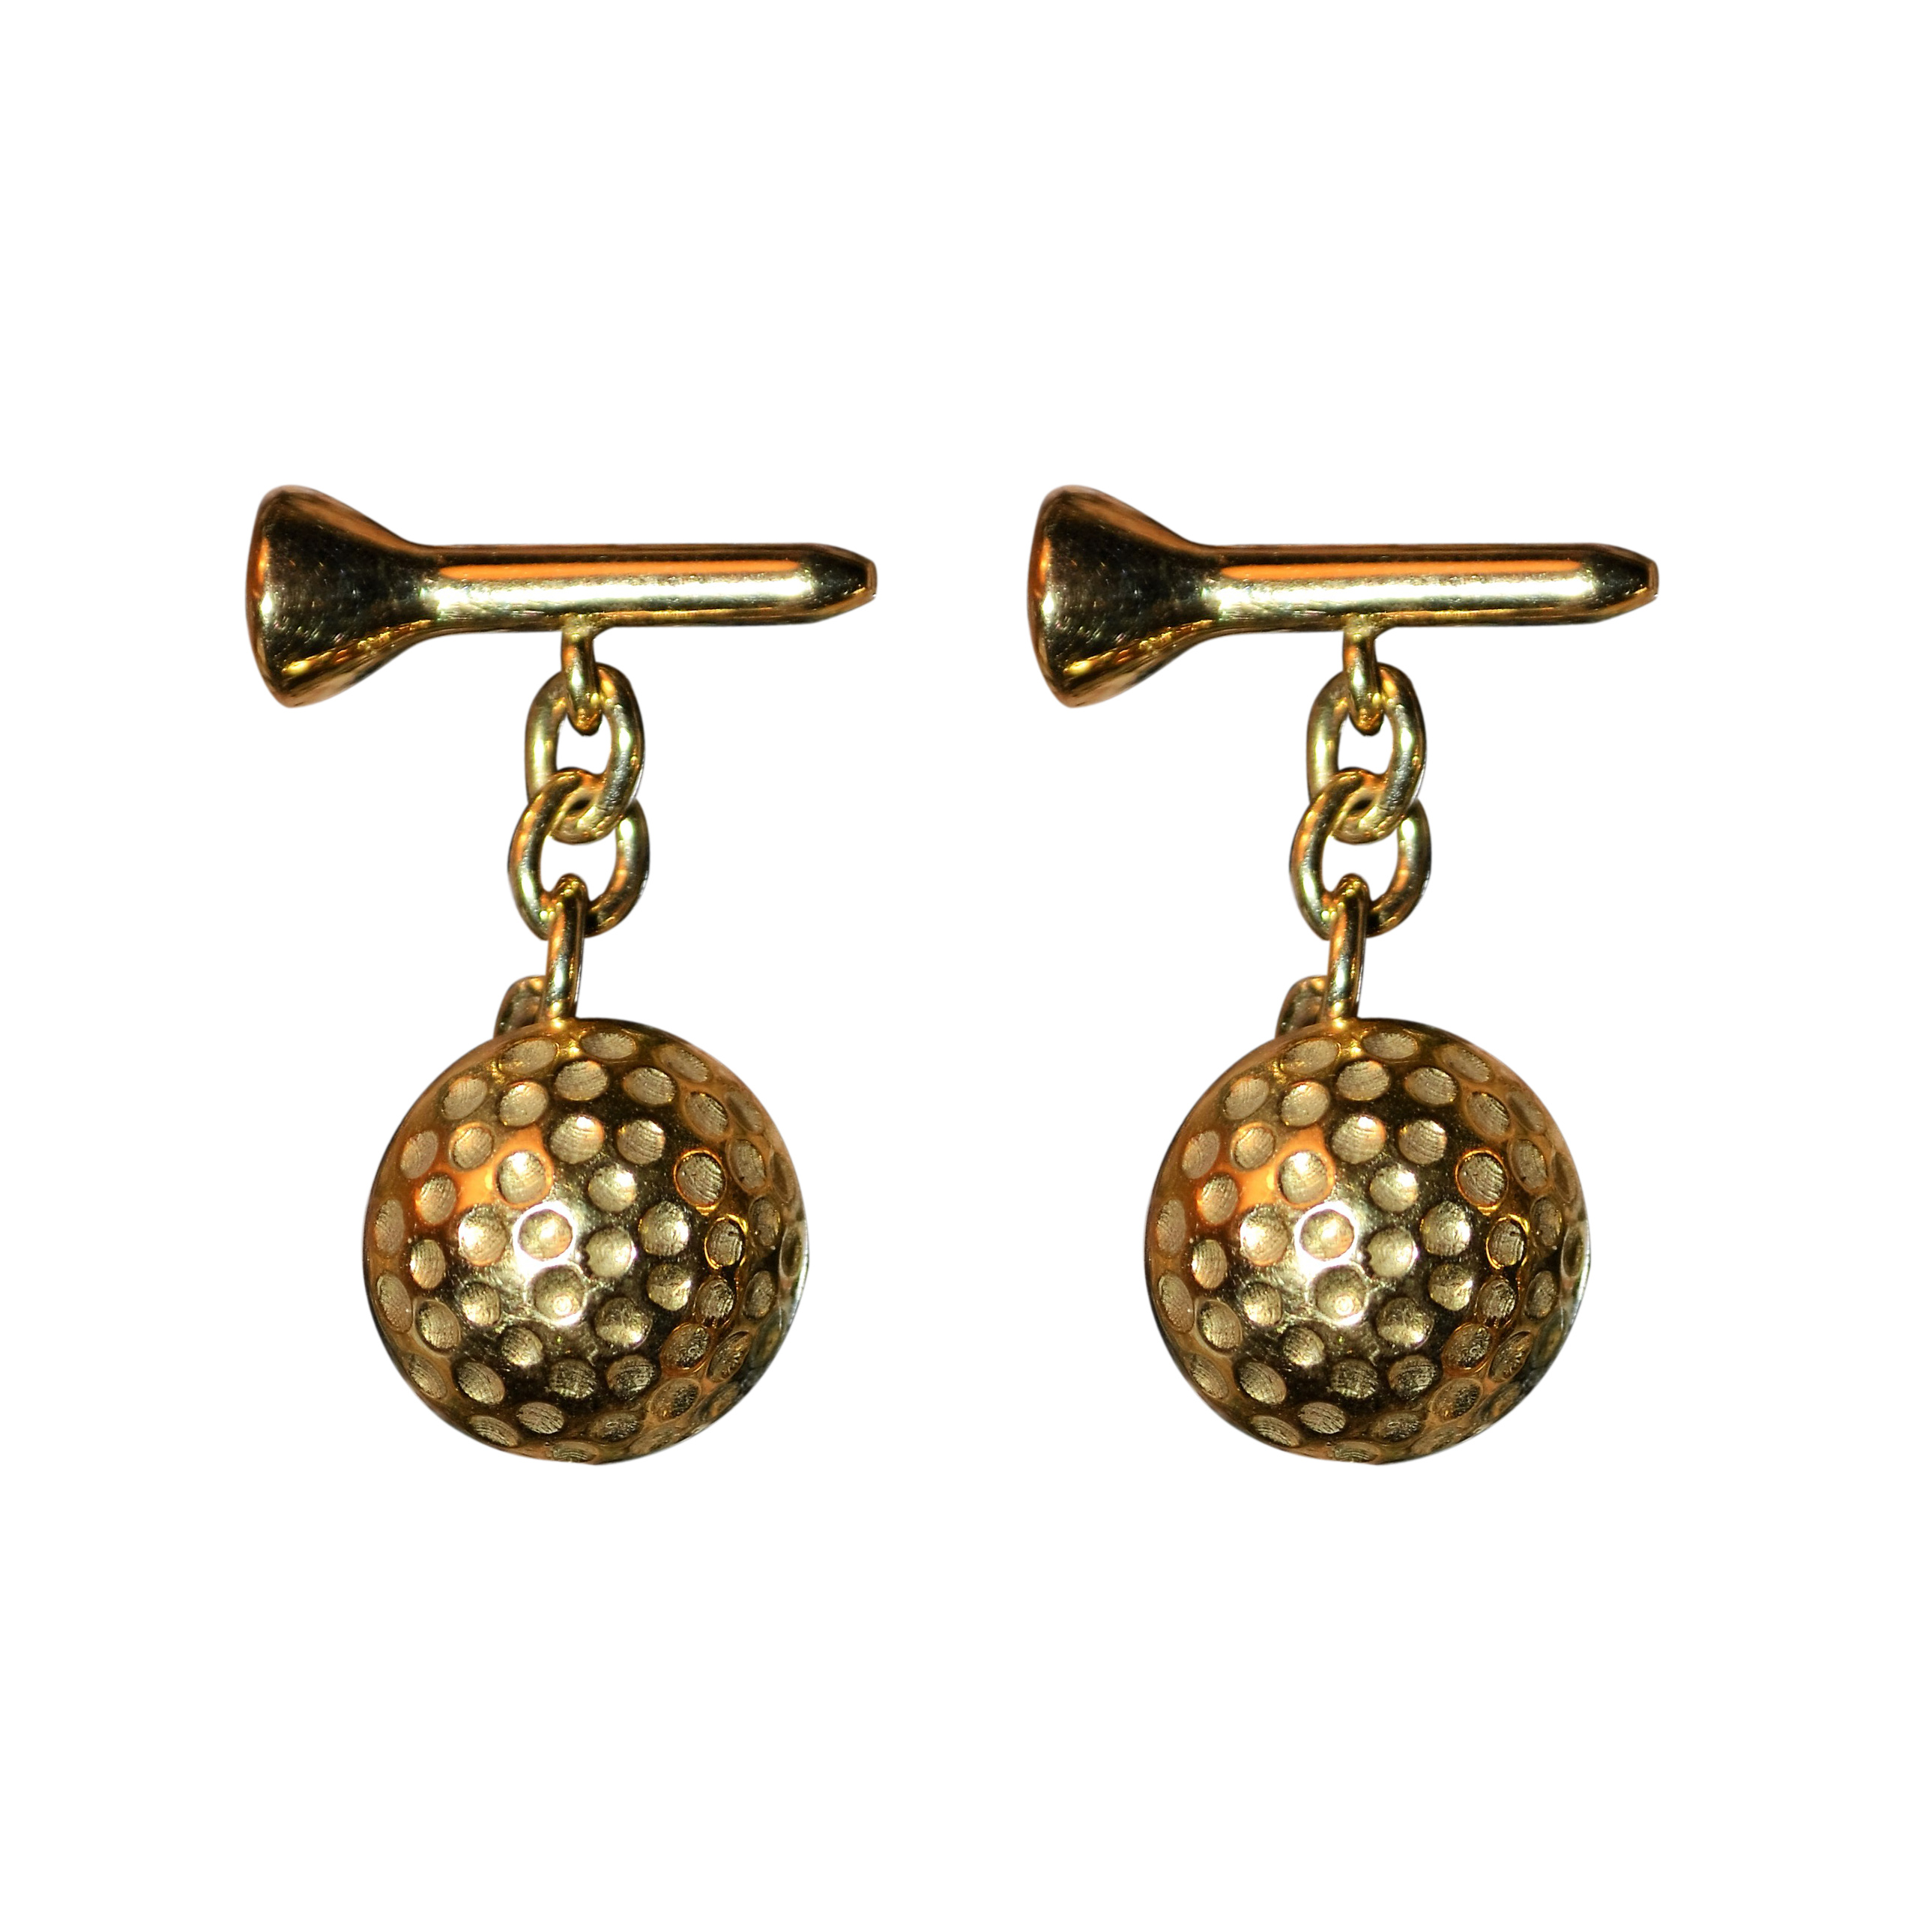 "Image of ""Deakin & Francis 18K Yellow Gold Golf Ball and Tee Cufflinks"""